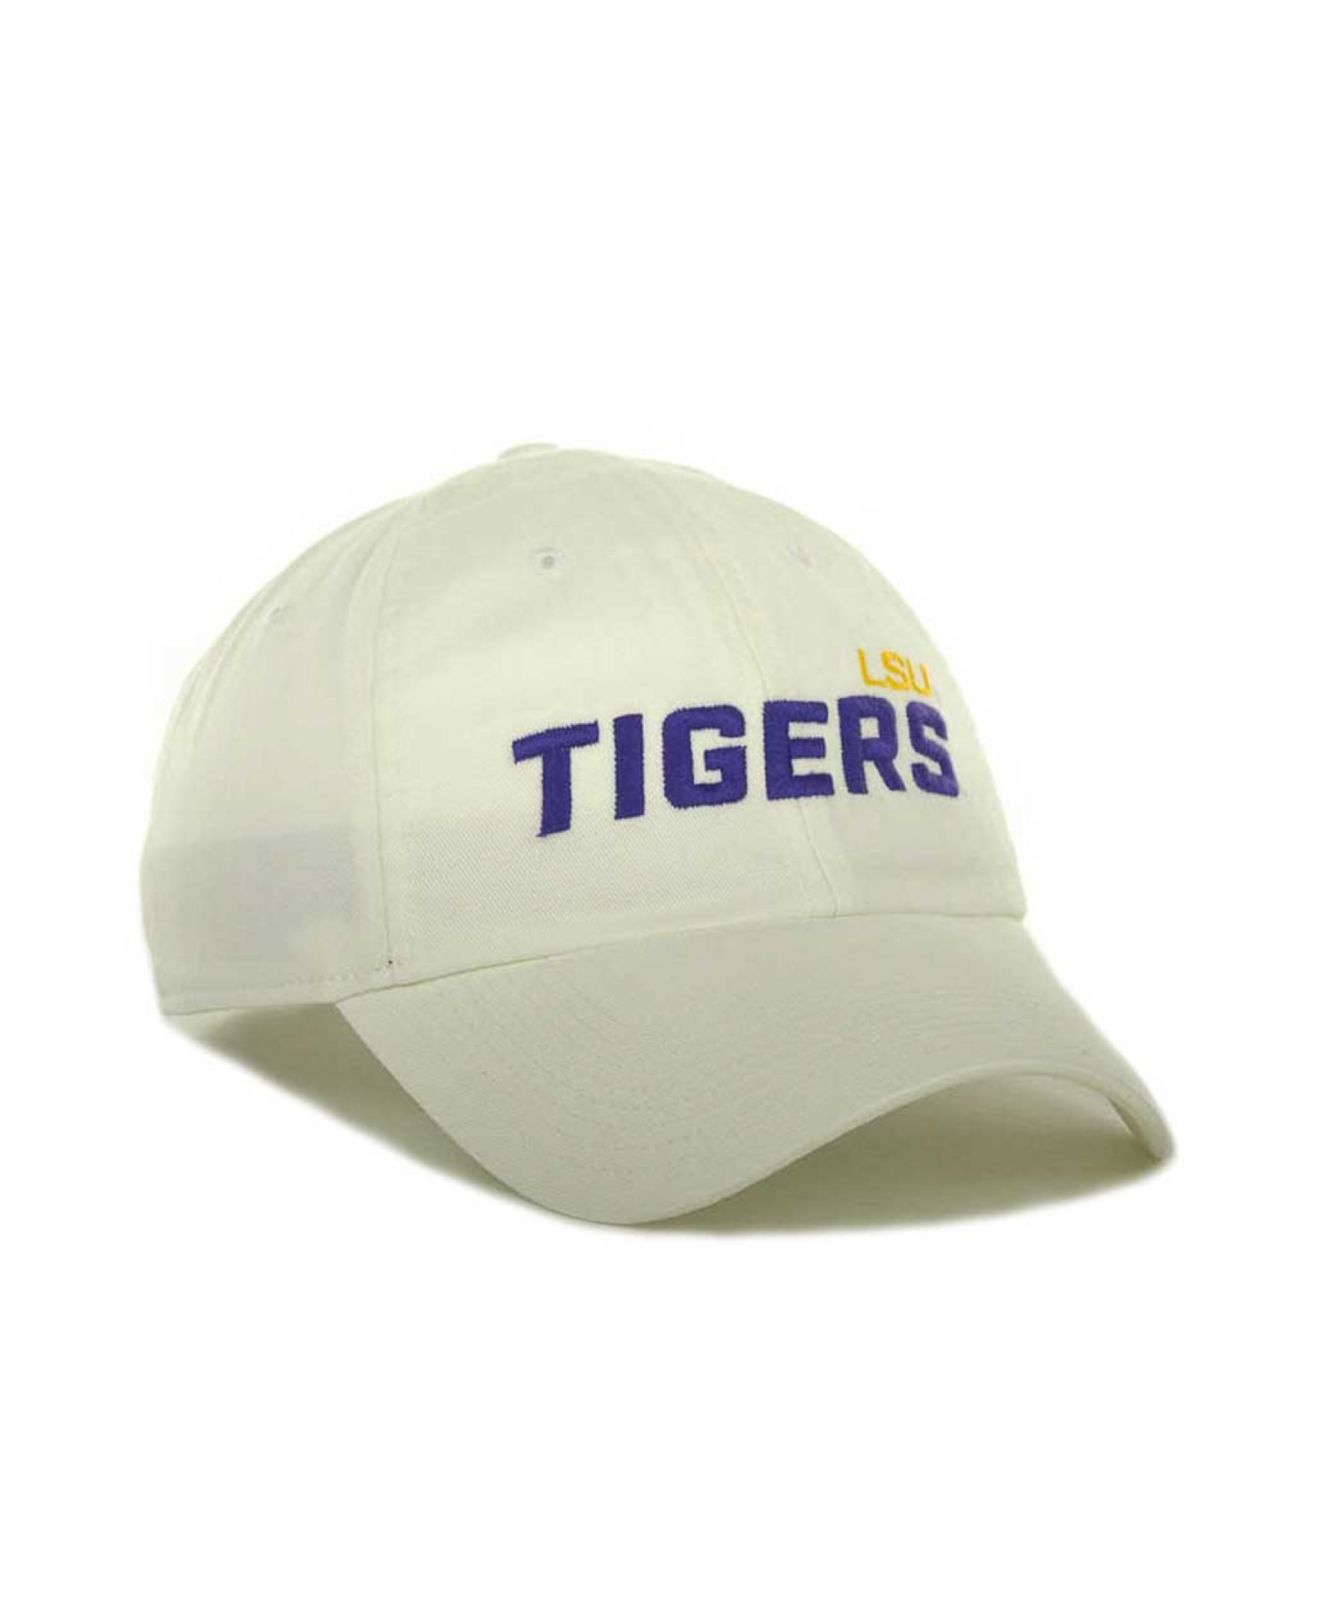 super popular ee396 9c179 ... sale lyst nike lsu tigers heritage 86 campus cap in white for men e12cf  2d893